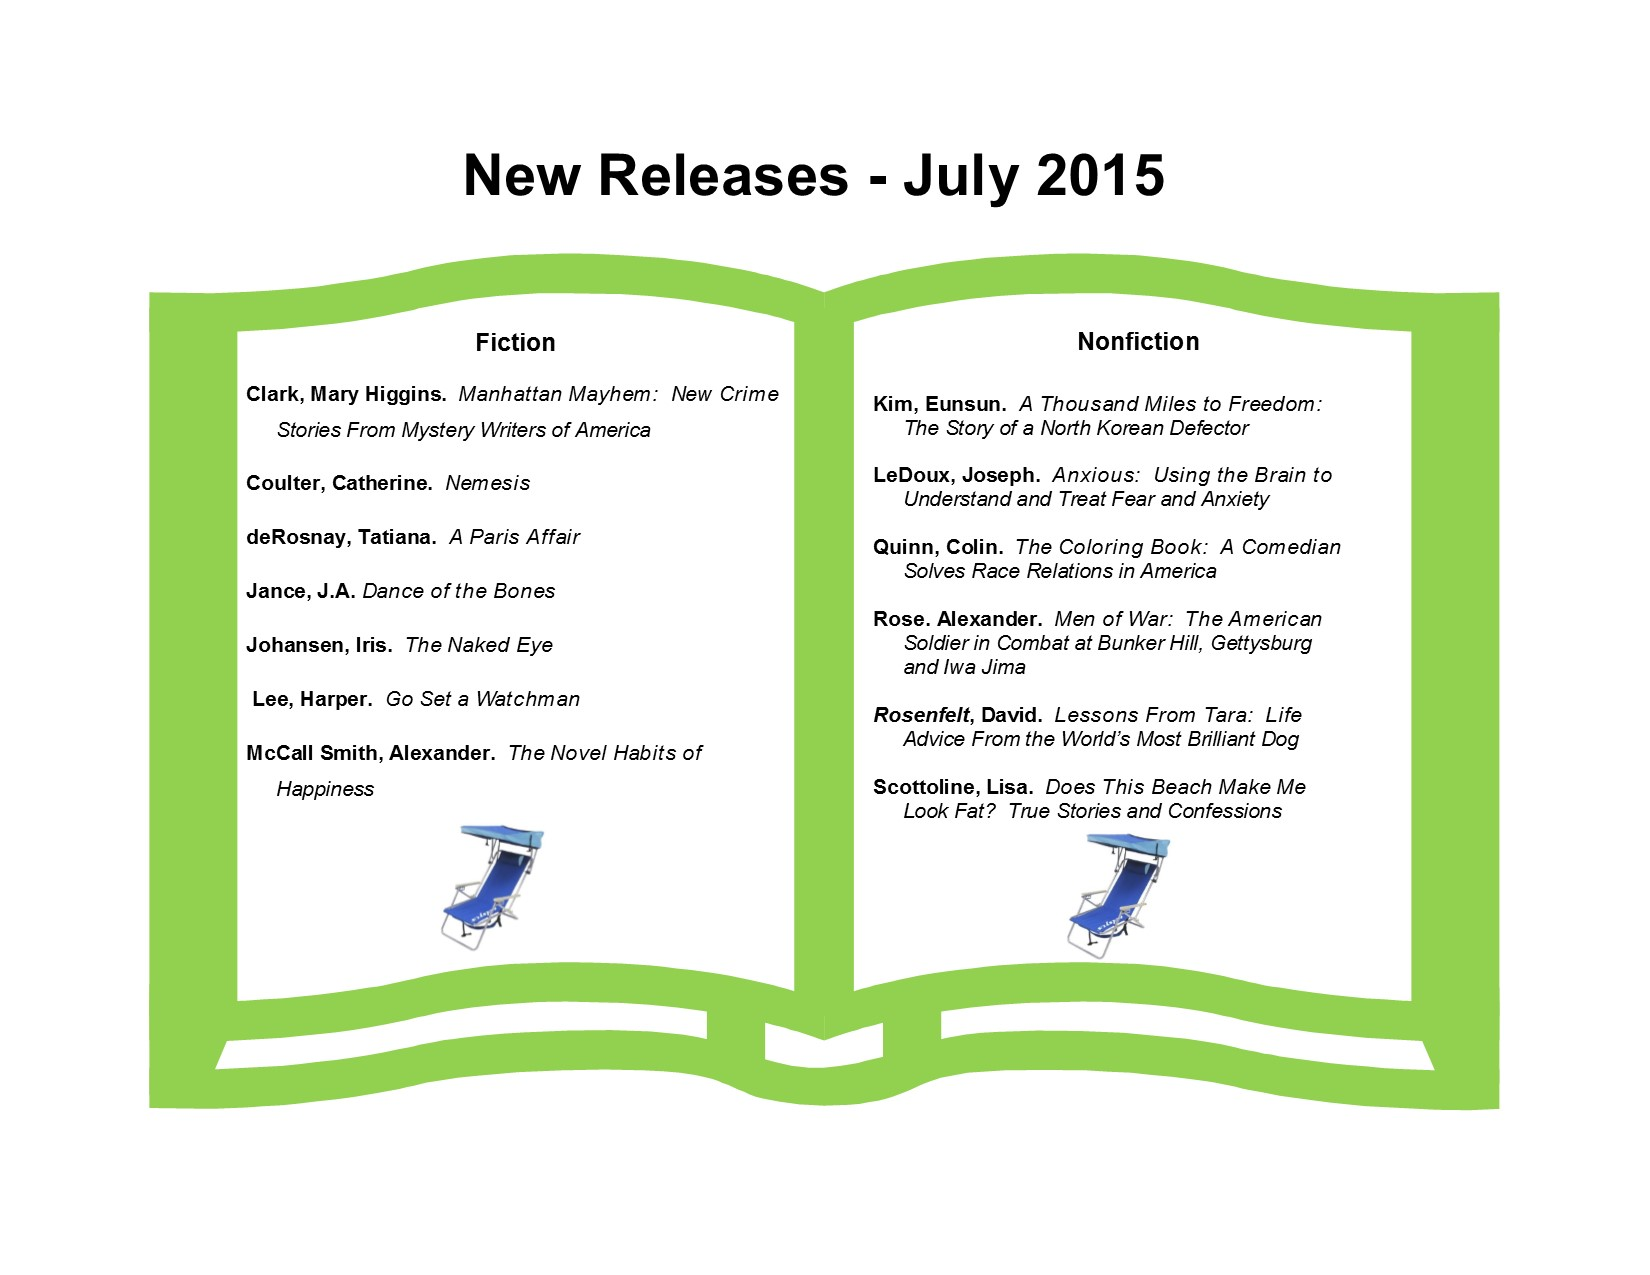 New Releases 7-15